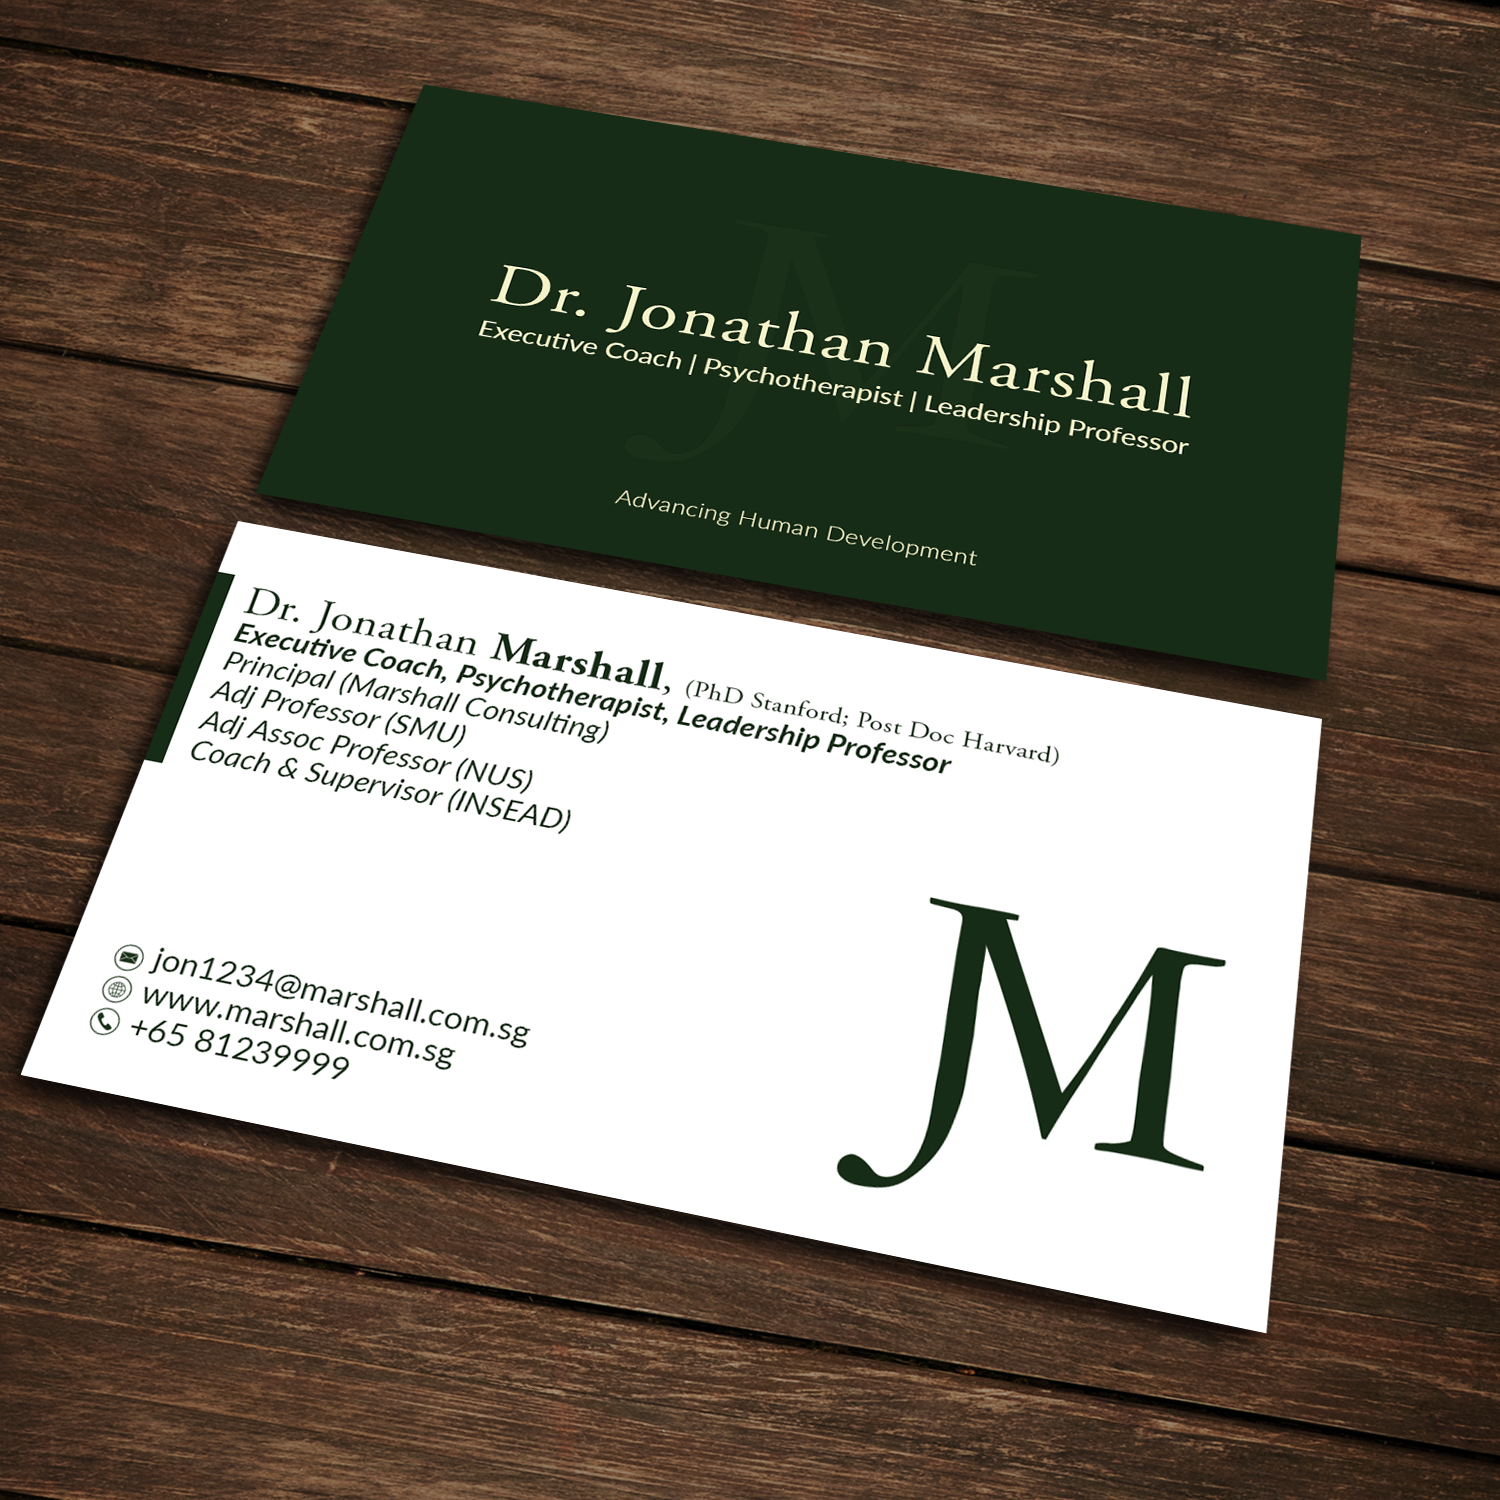 Dorable psychology business cards illustration business card ideas old fashioned psychotherapist business cards frieze business card colourmoves